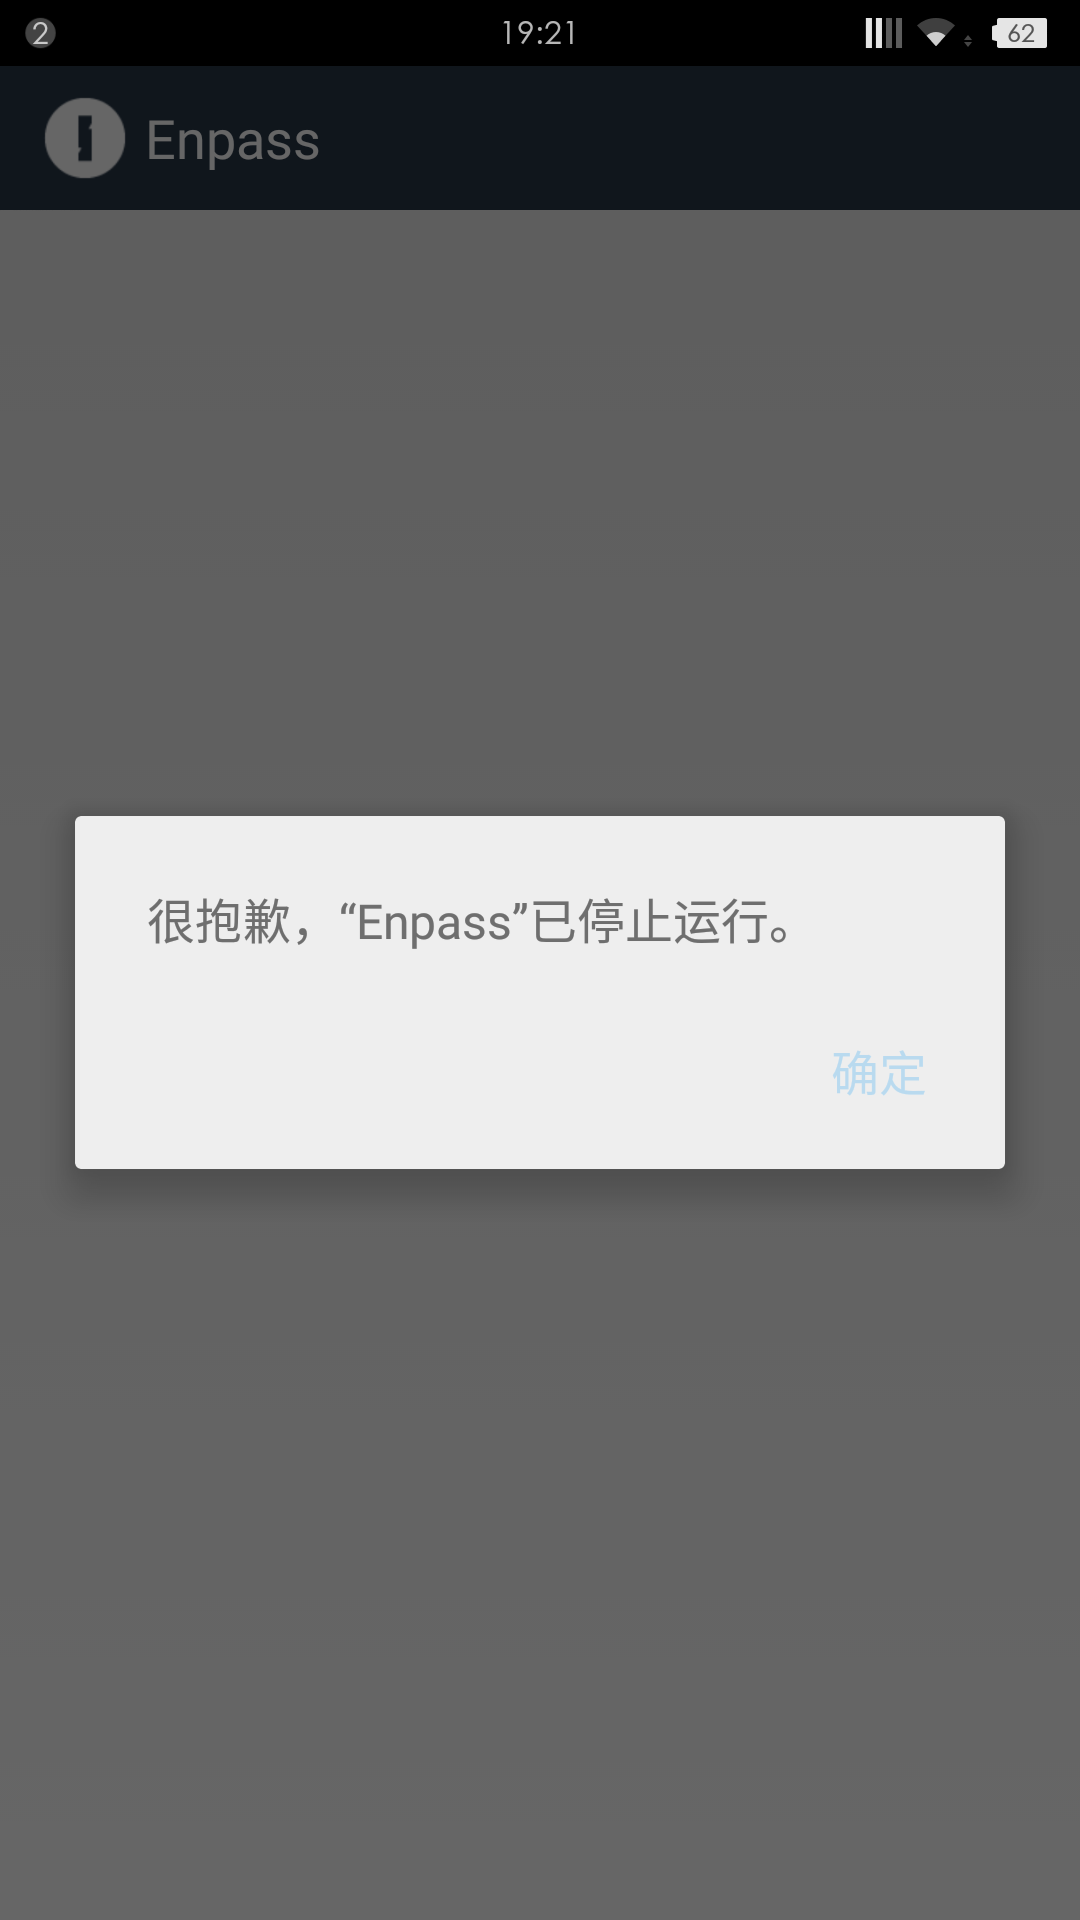 Screenshot_2015-09-06-19-21-49.png